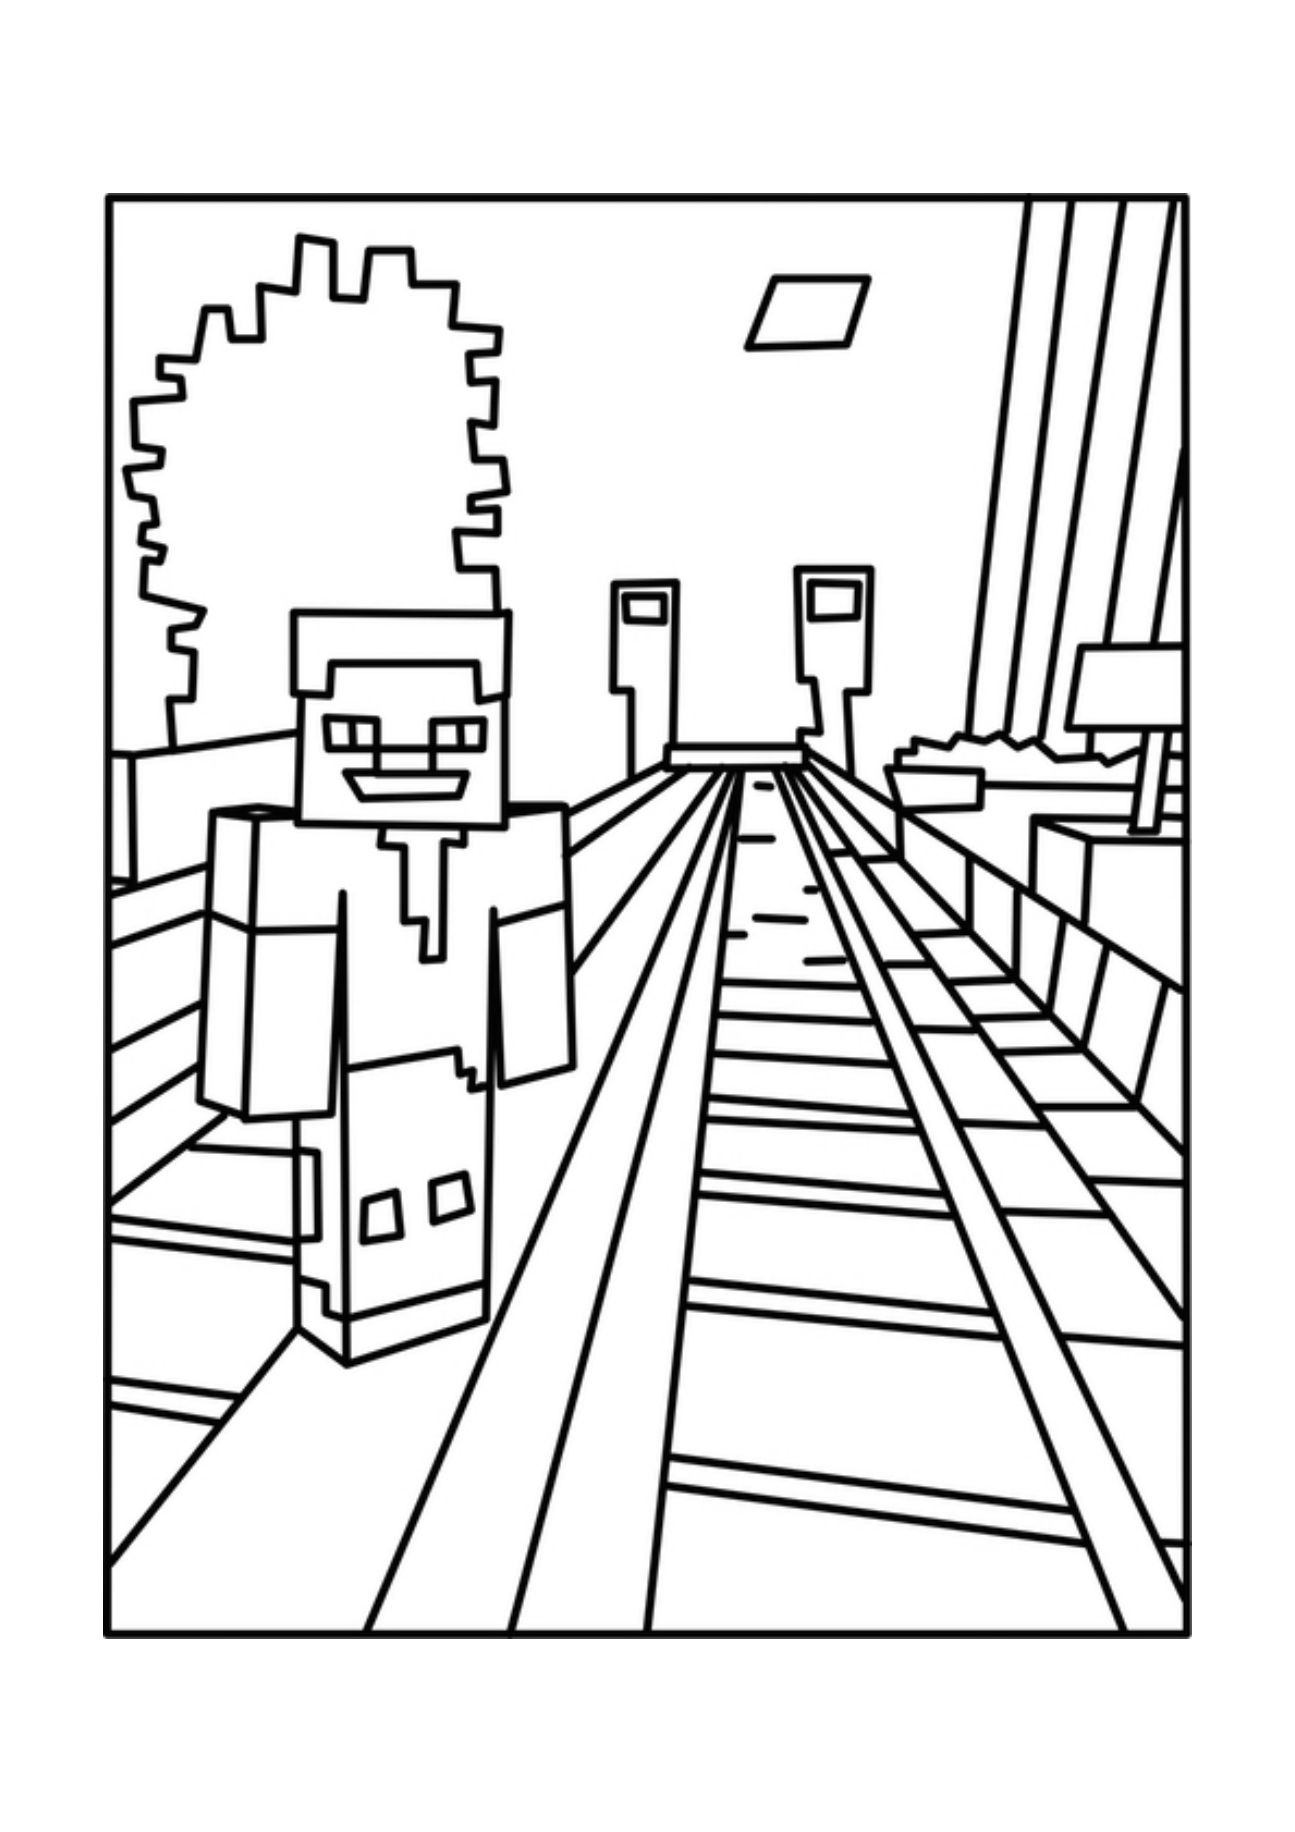 Minecraft Ausmalbilder Skelett : Printable Minecraft Coloring Page New Sites For Coloring Sheets